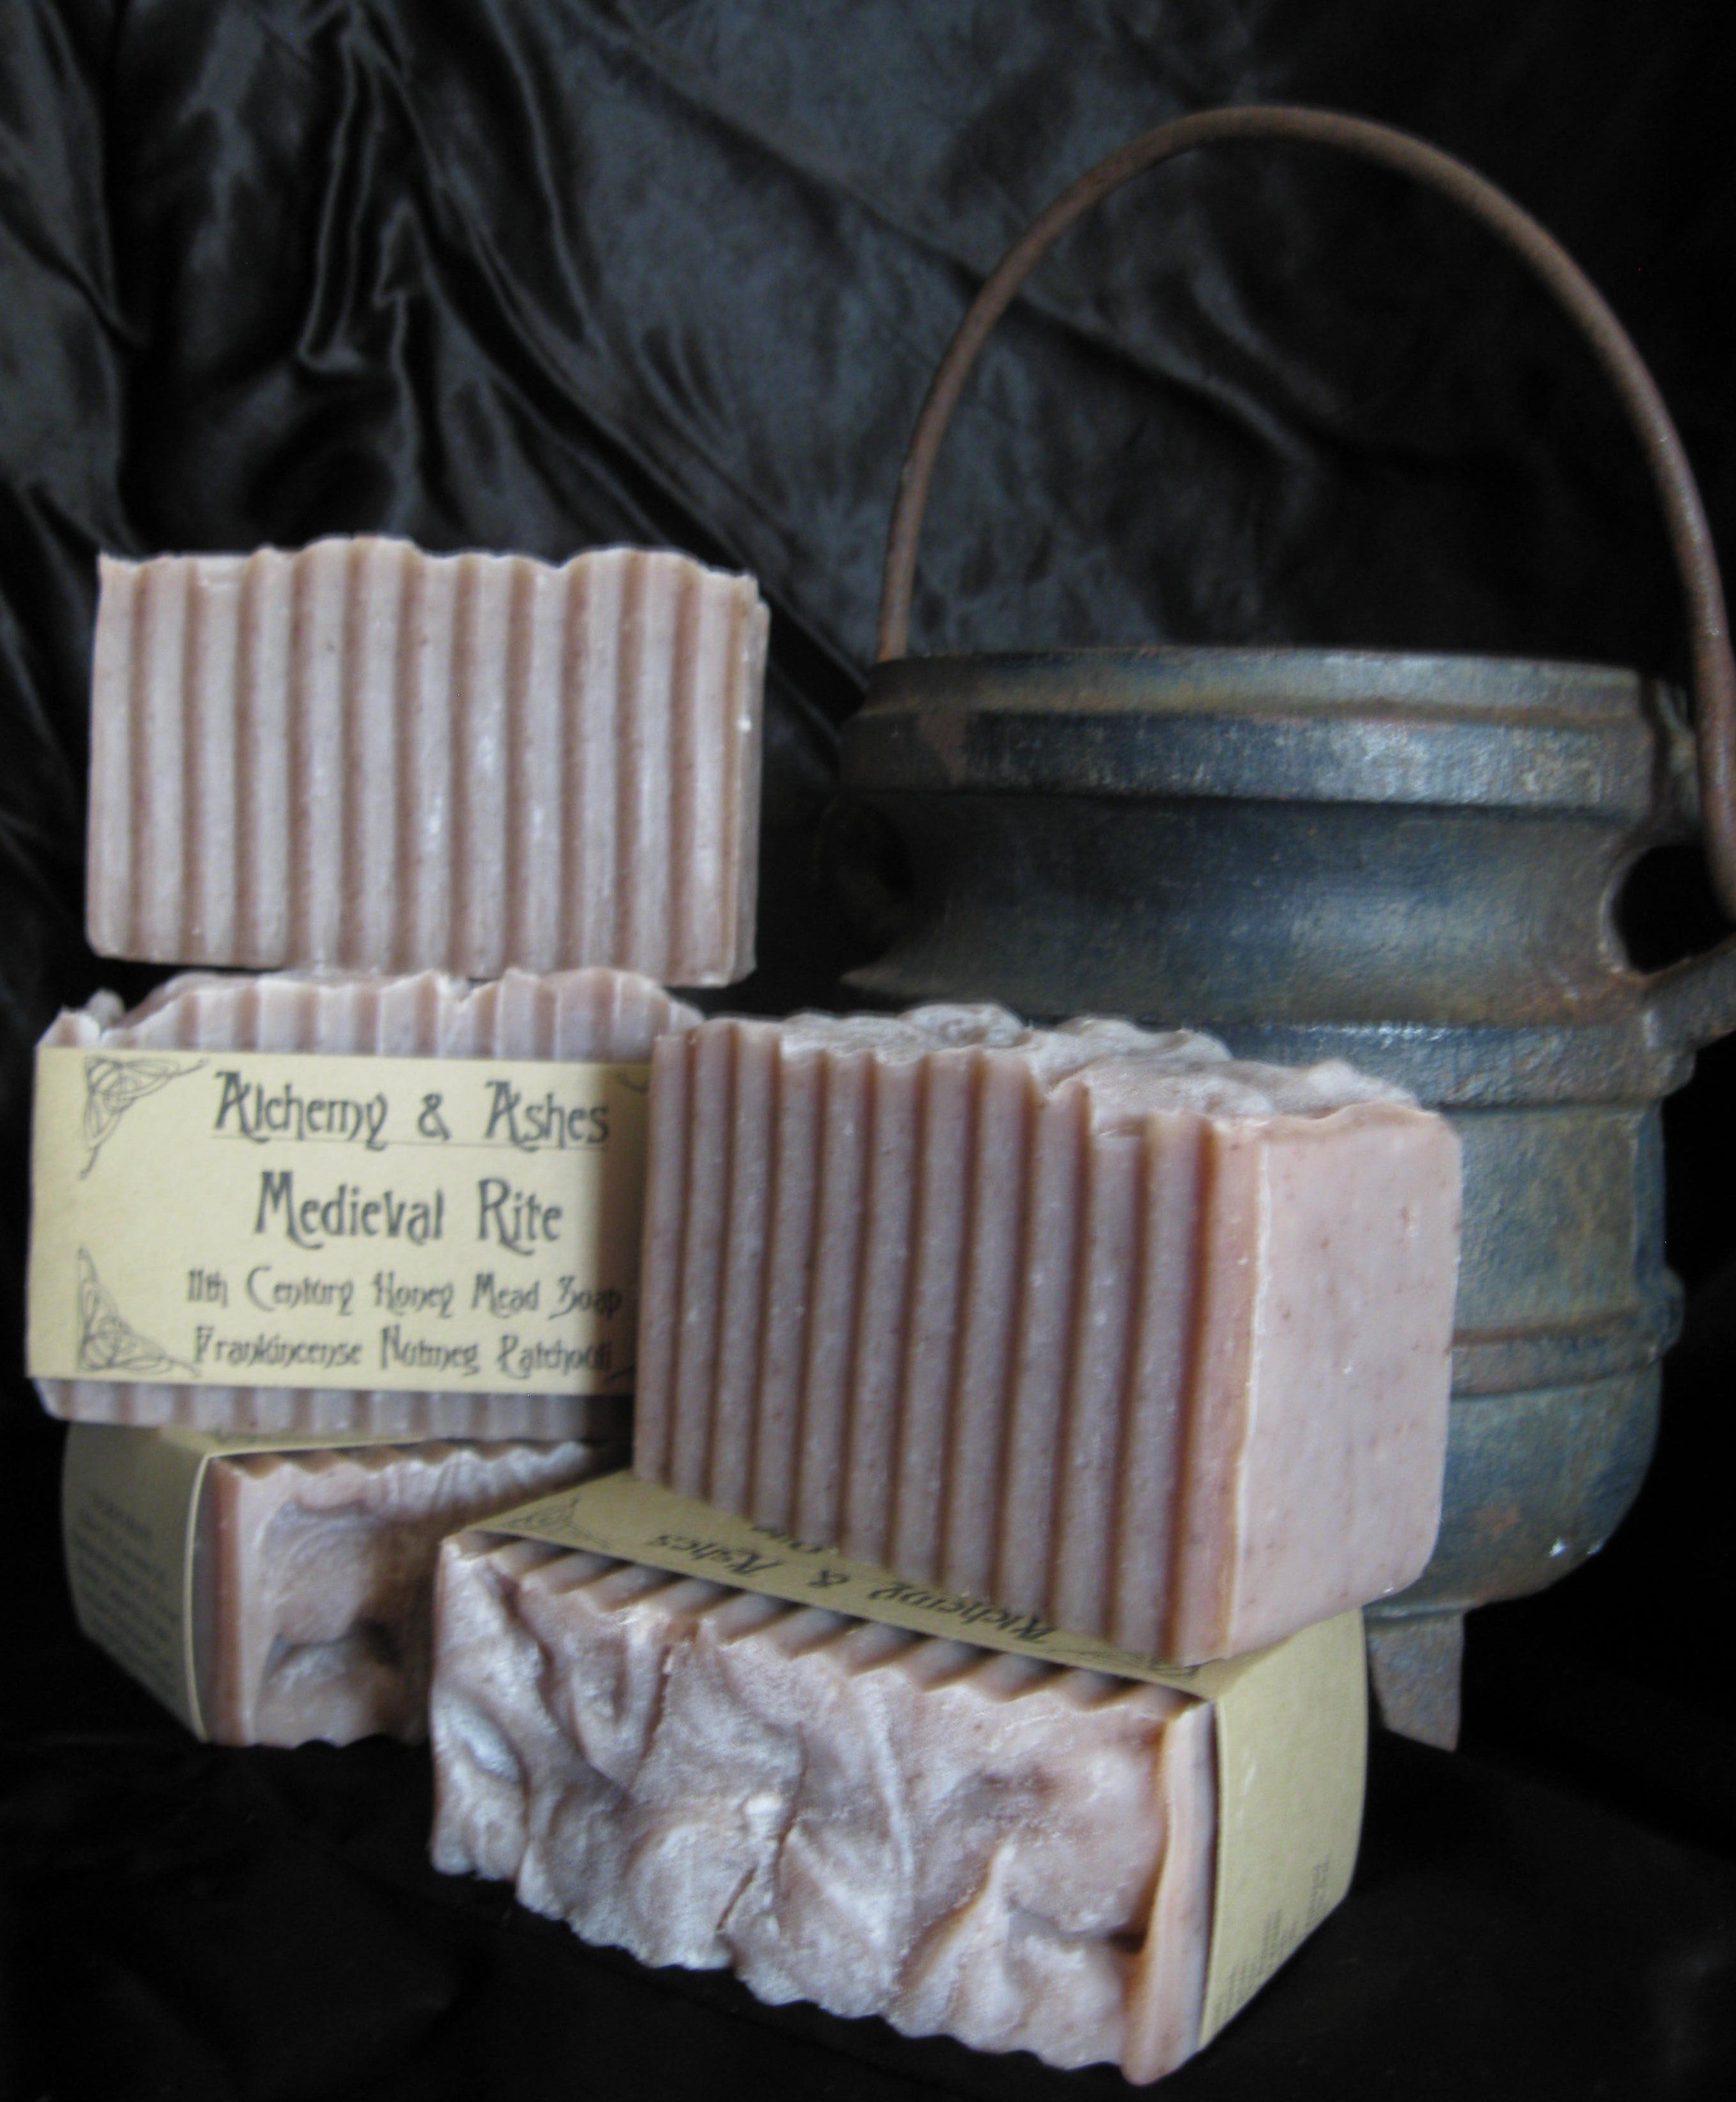 Medieval Rite 11th Century Honey Mead Cold Process Soap: Made with real Honey Ale, Honey, Black Walnut Hull, and scented with essential oils of Frankincense, Nutmeg, and Patchouli.